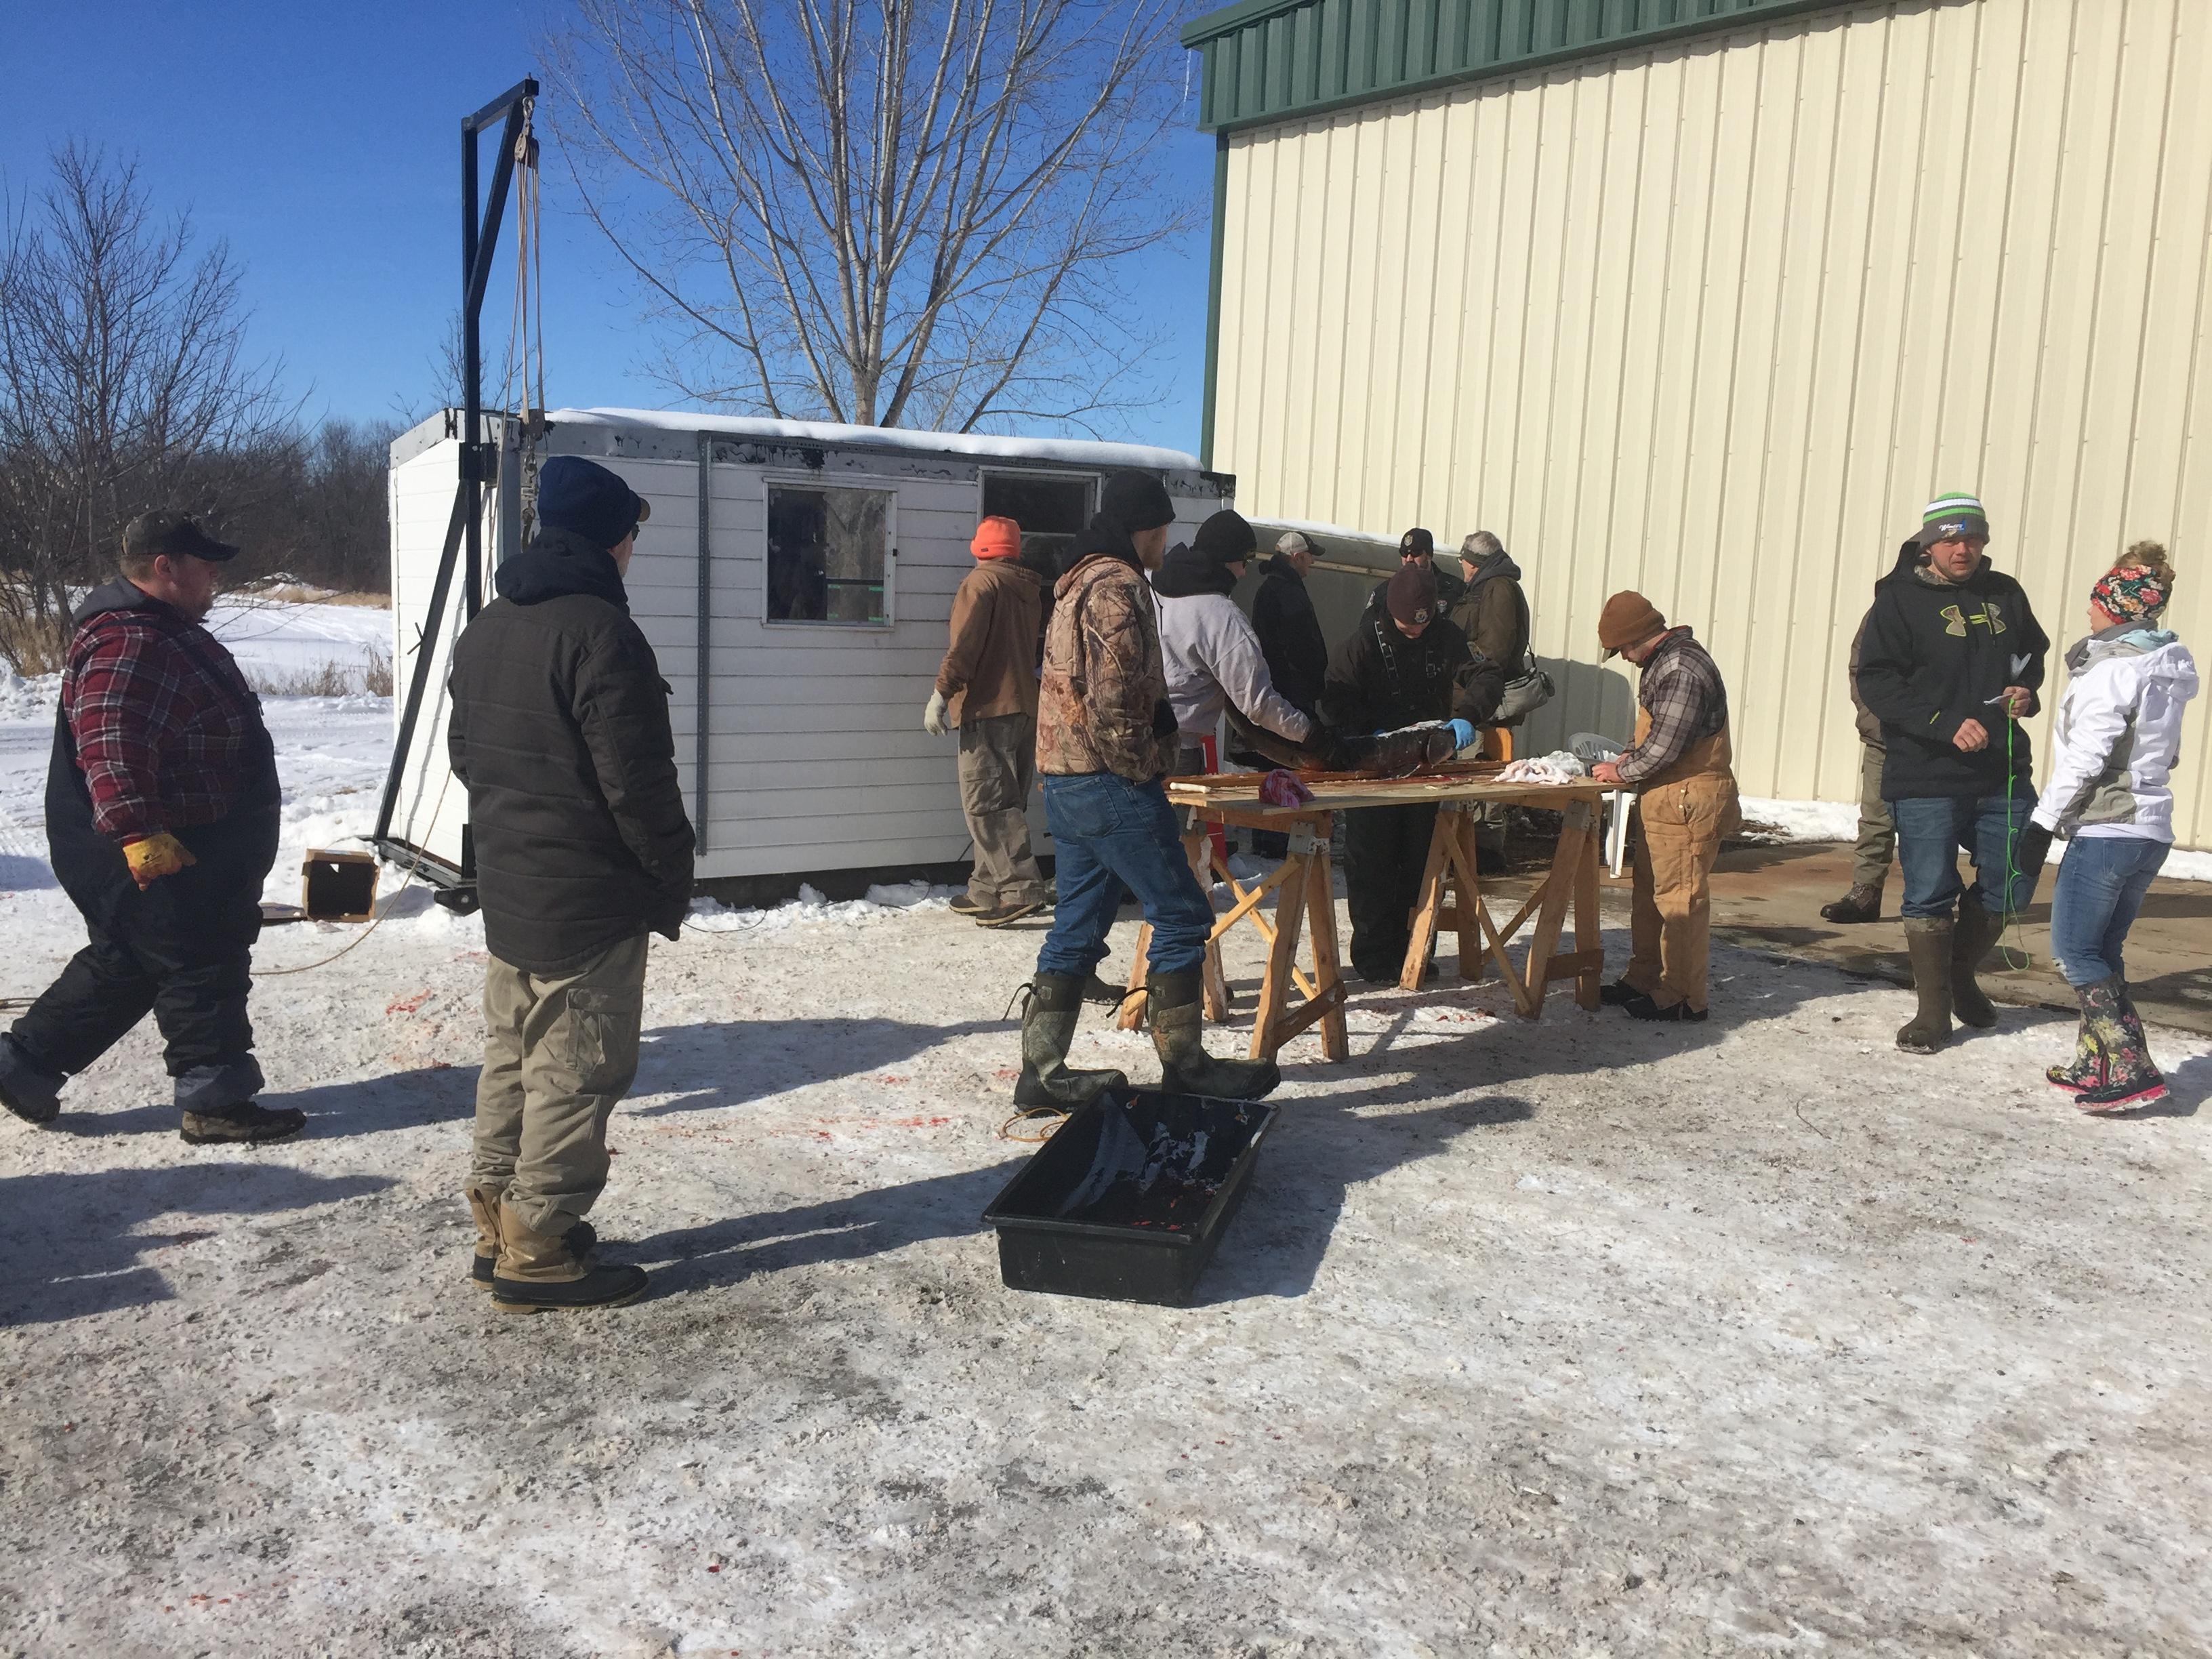 Critters sturgeon registration station in Winneconne on Saturday, Feb. 10, 2018. (WLUK/Eric Peterson)